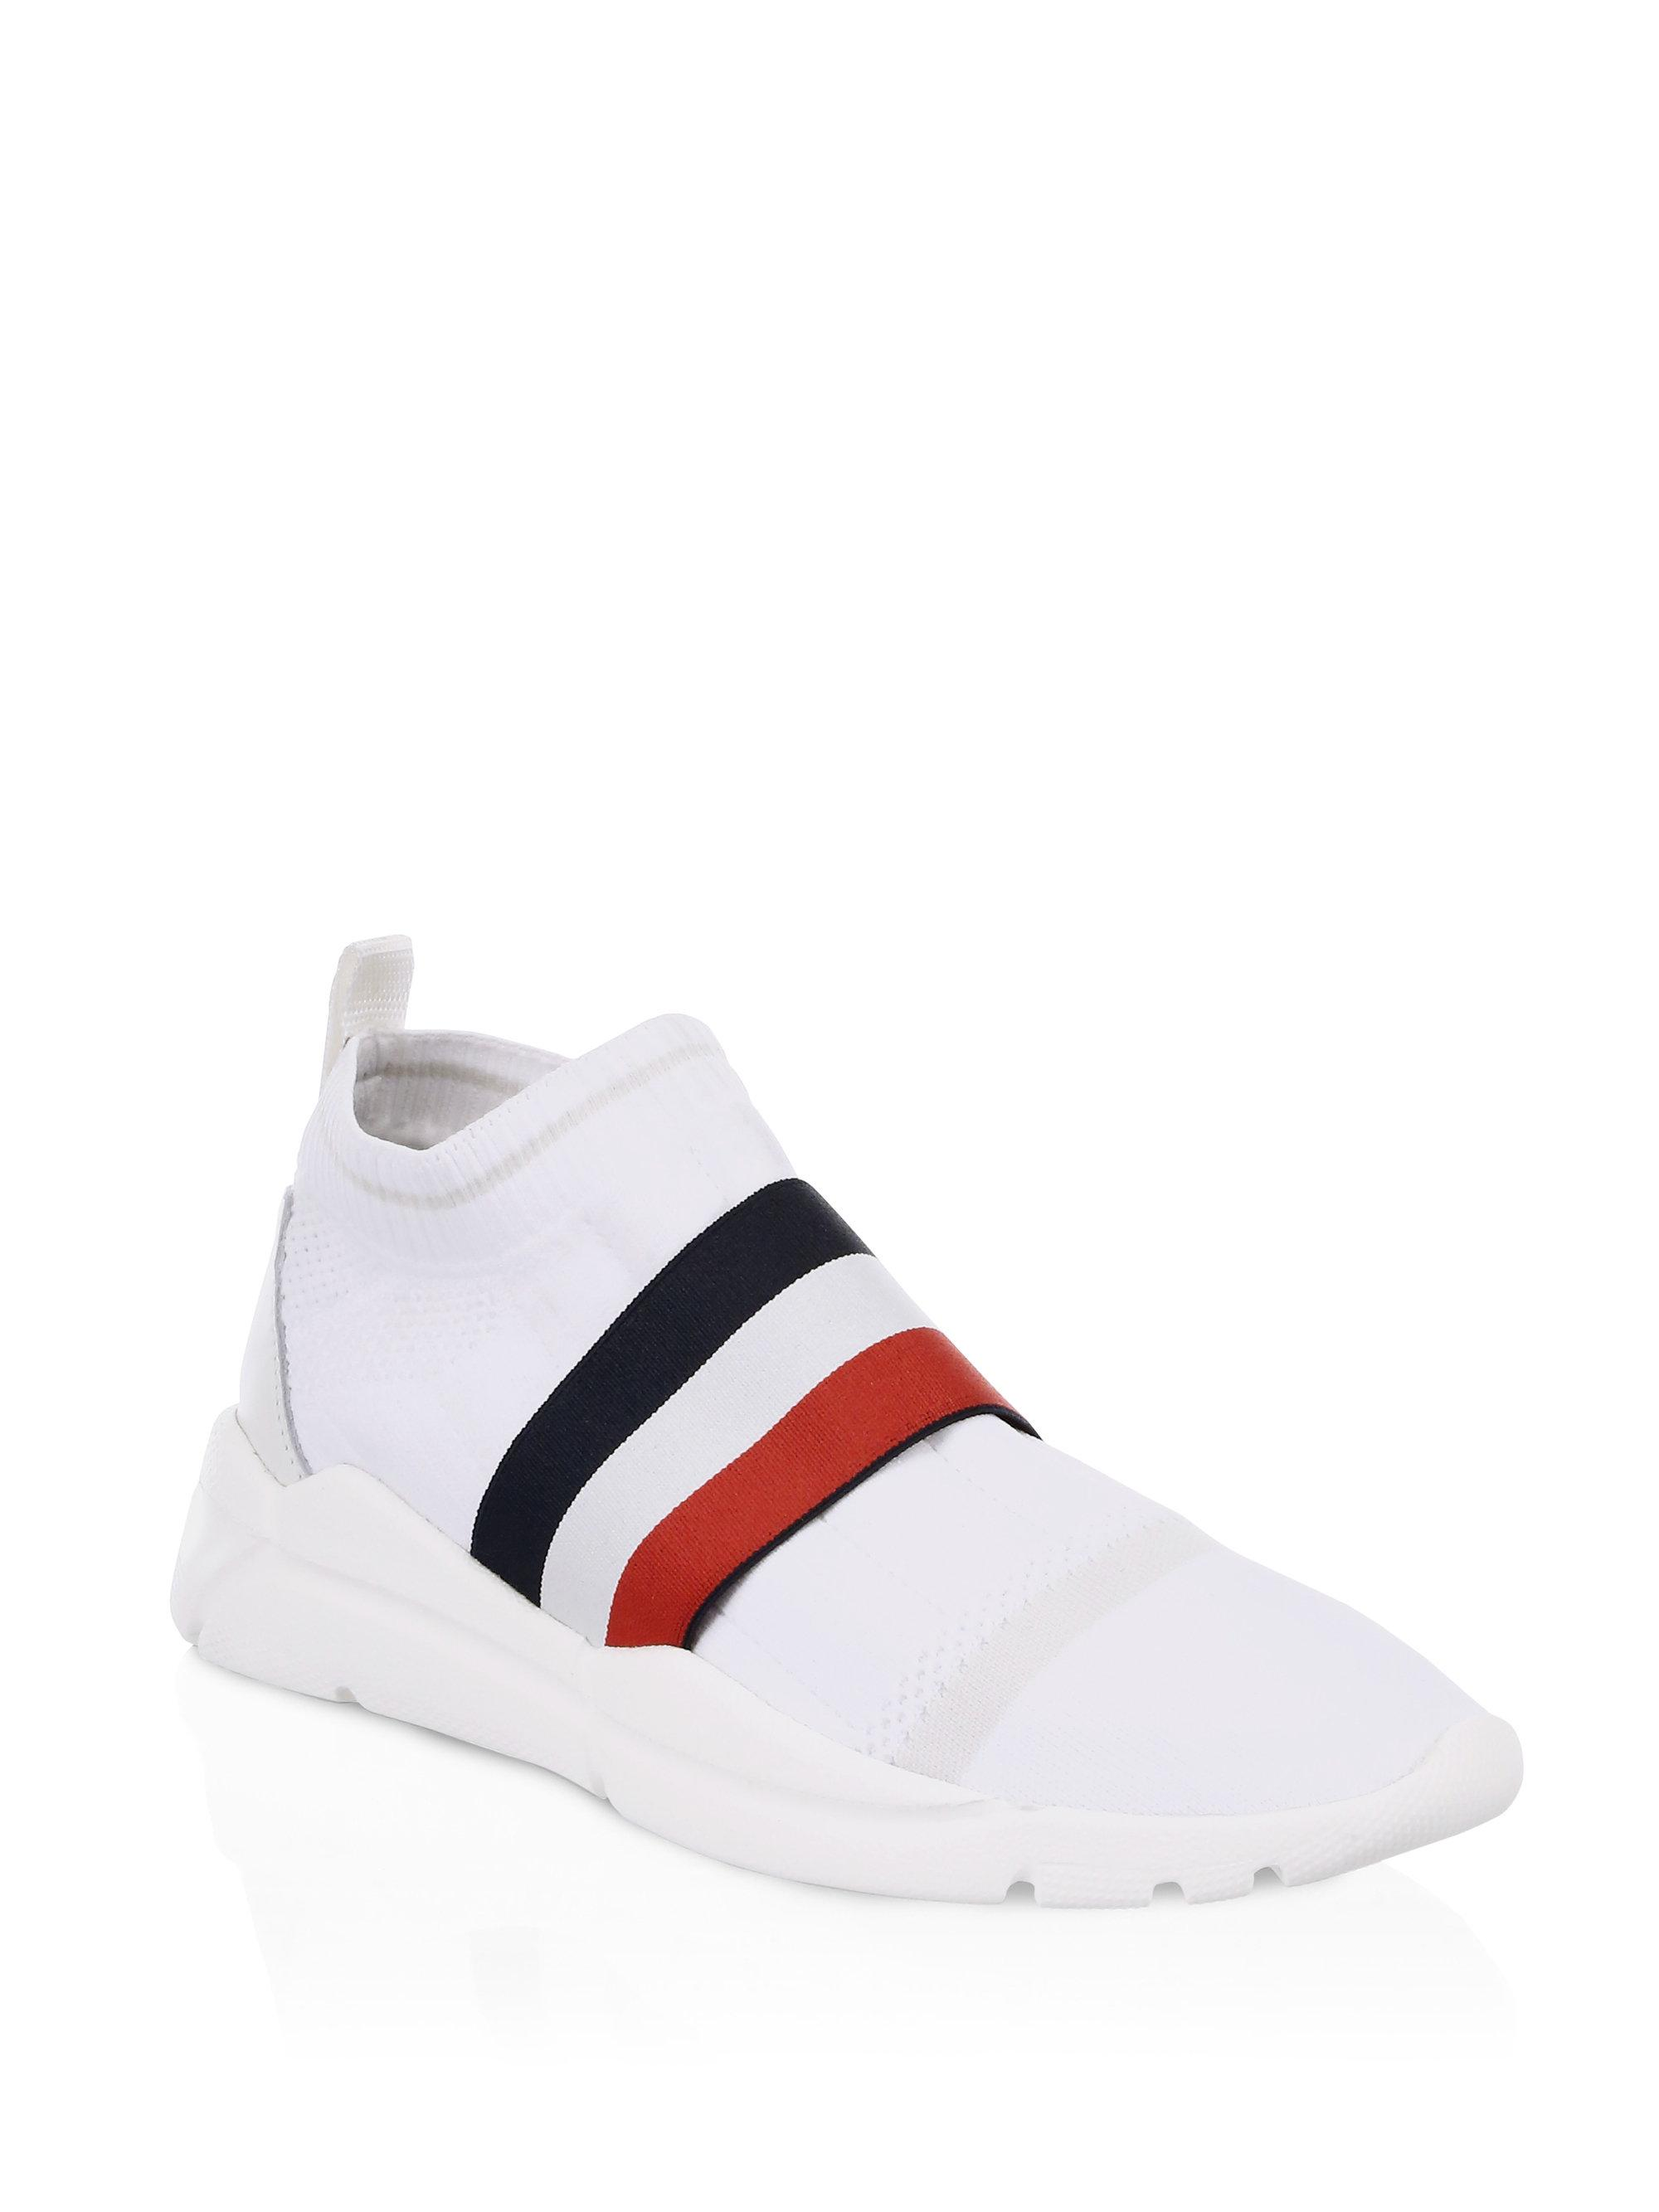 3297881d6 Lyst - Moncler Adon Knit Trainers in White for Men